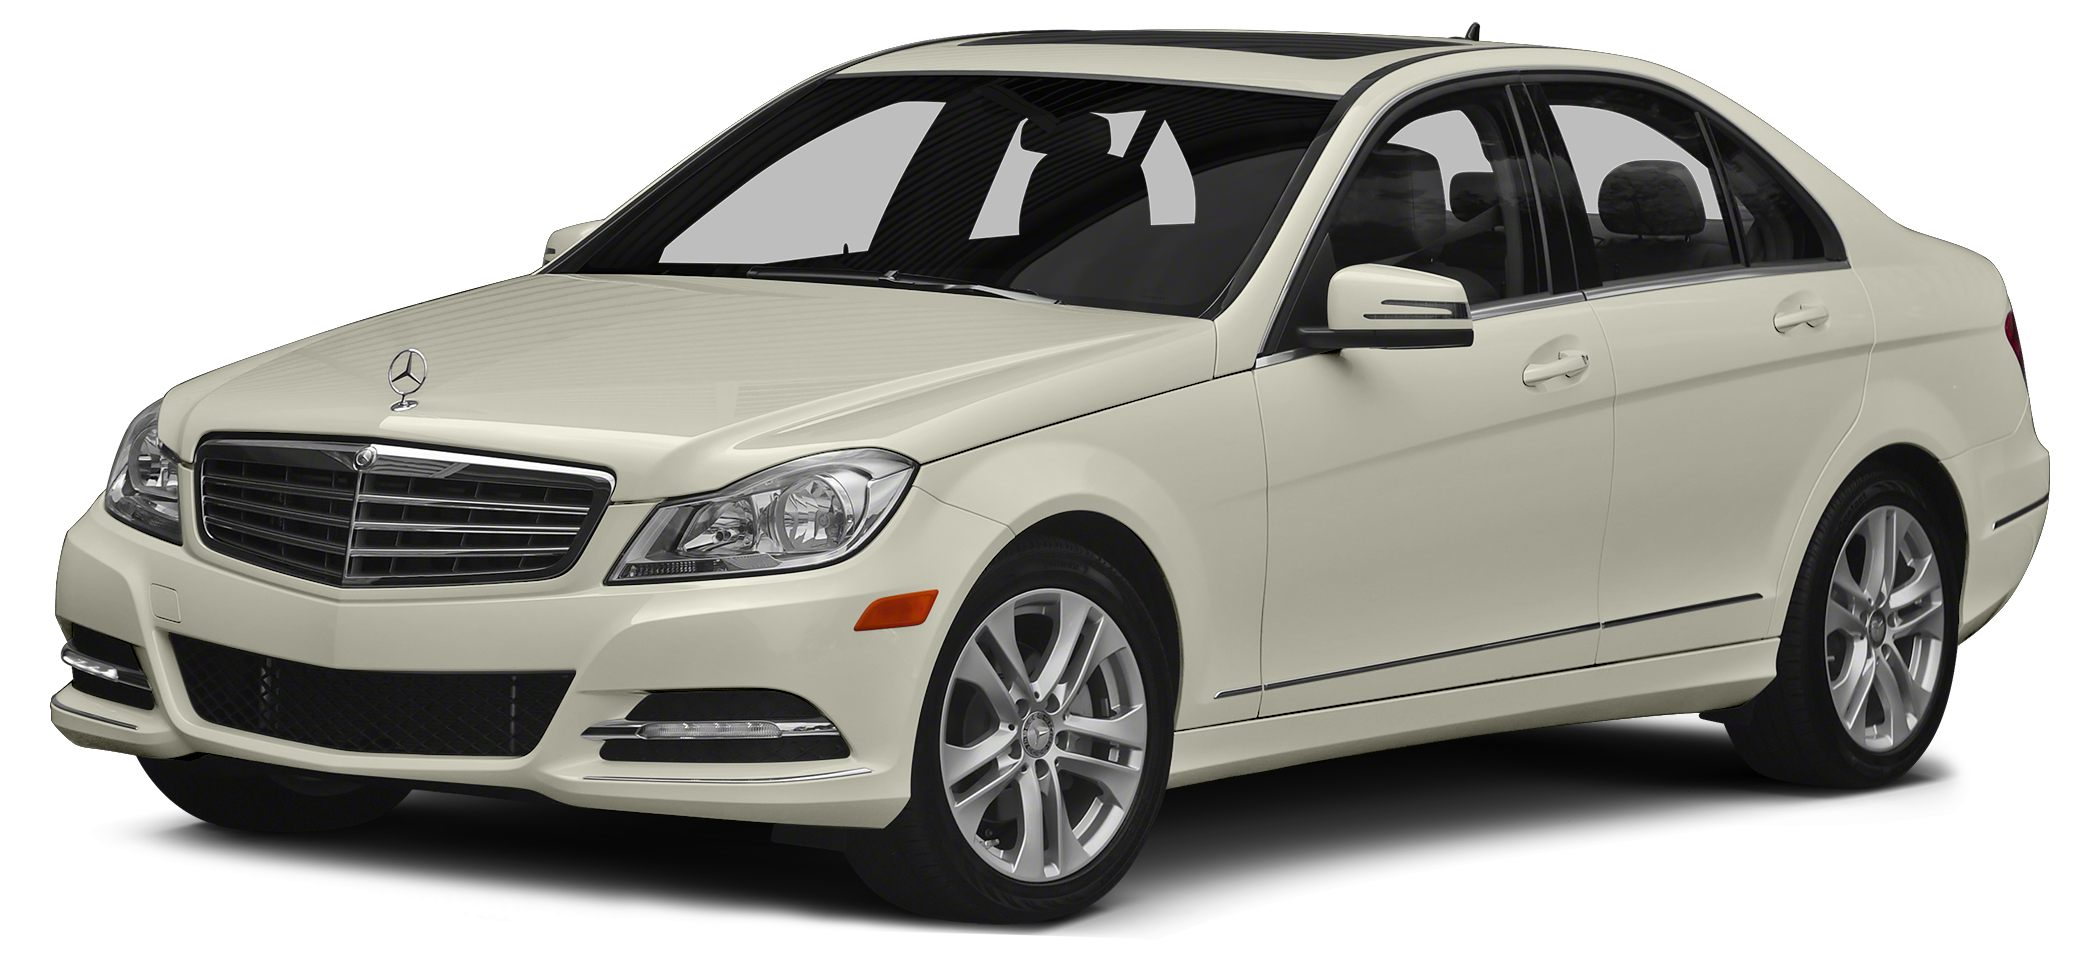 2013 MERCEDES C-Class C300 Luxury 4MATIC Very Nice WAS 23889 PRICED TO MOVE 2700 below NADA